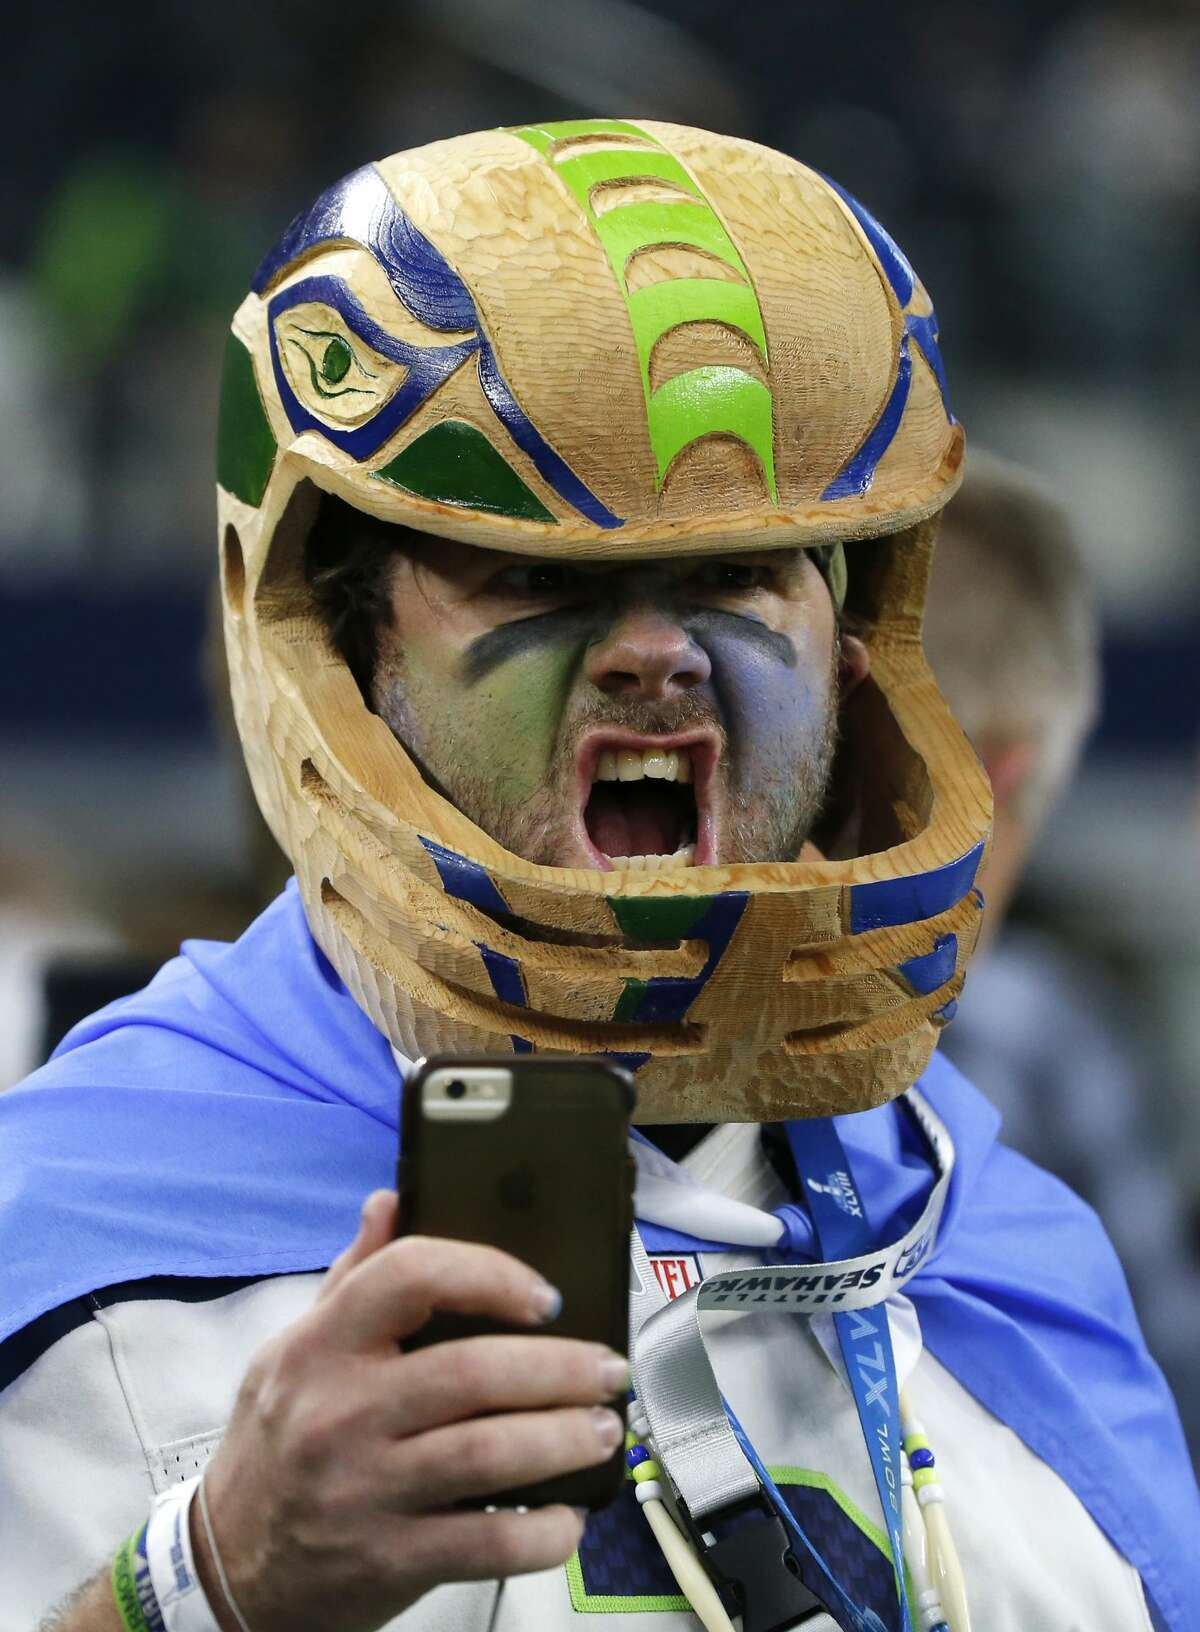 Christian Hill of Seattle takes his selfie as he stands on the field watching warmups before an NFL football game between the Seattle Seahawks and Dallas Cowboys on Sunday, Dec. 24, 2017, in Arlington, Texas. (AP Photo/Michael Ainsworth)